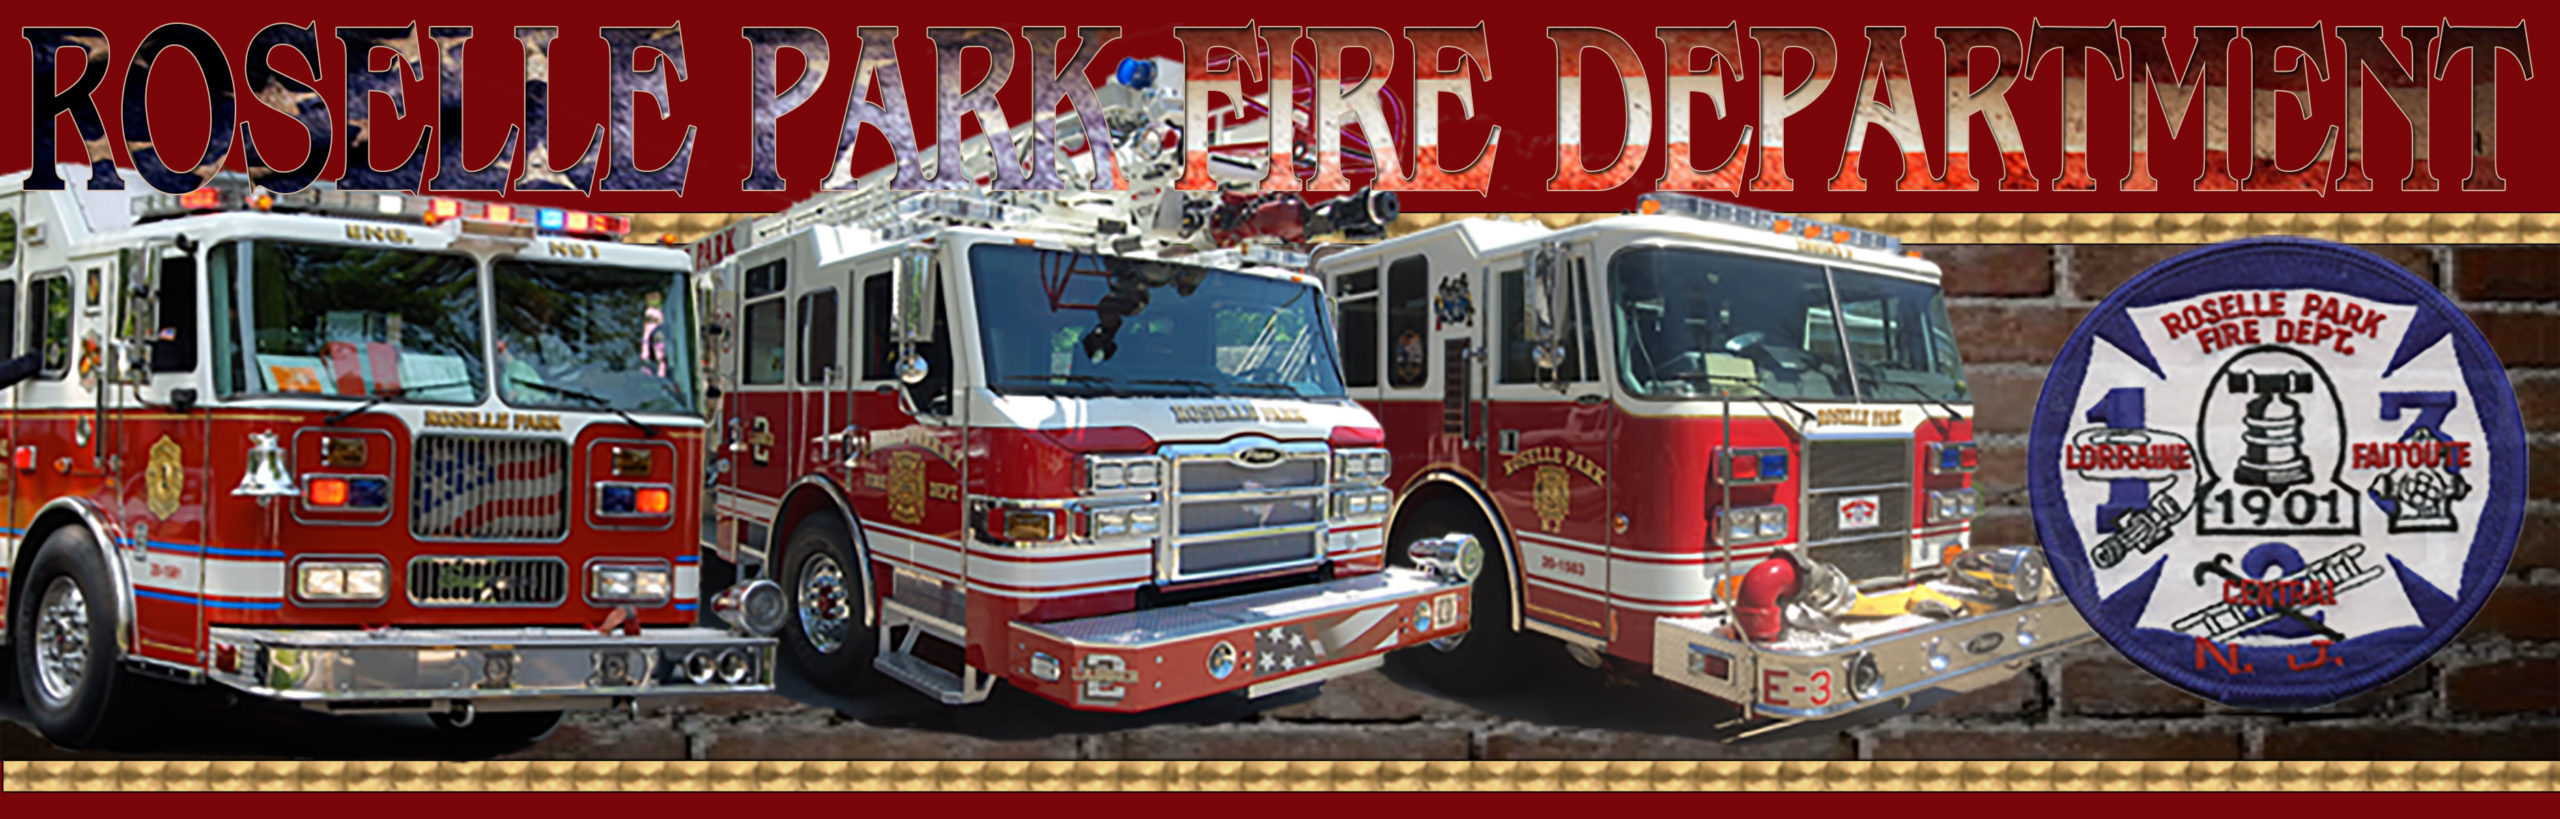 Roselle Park Fire Department